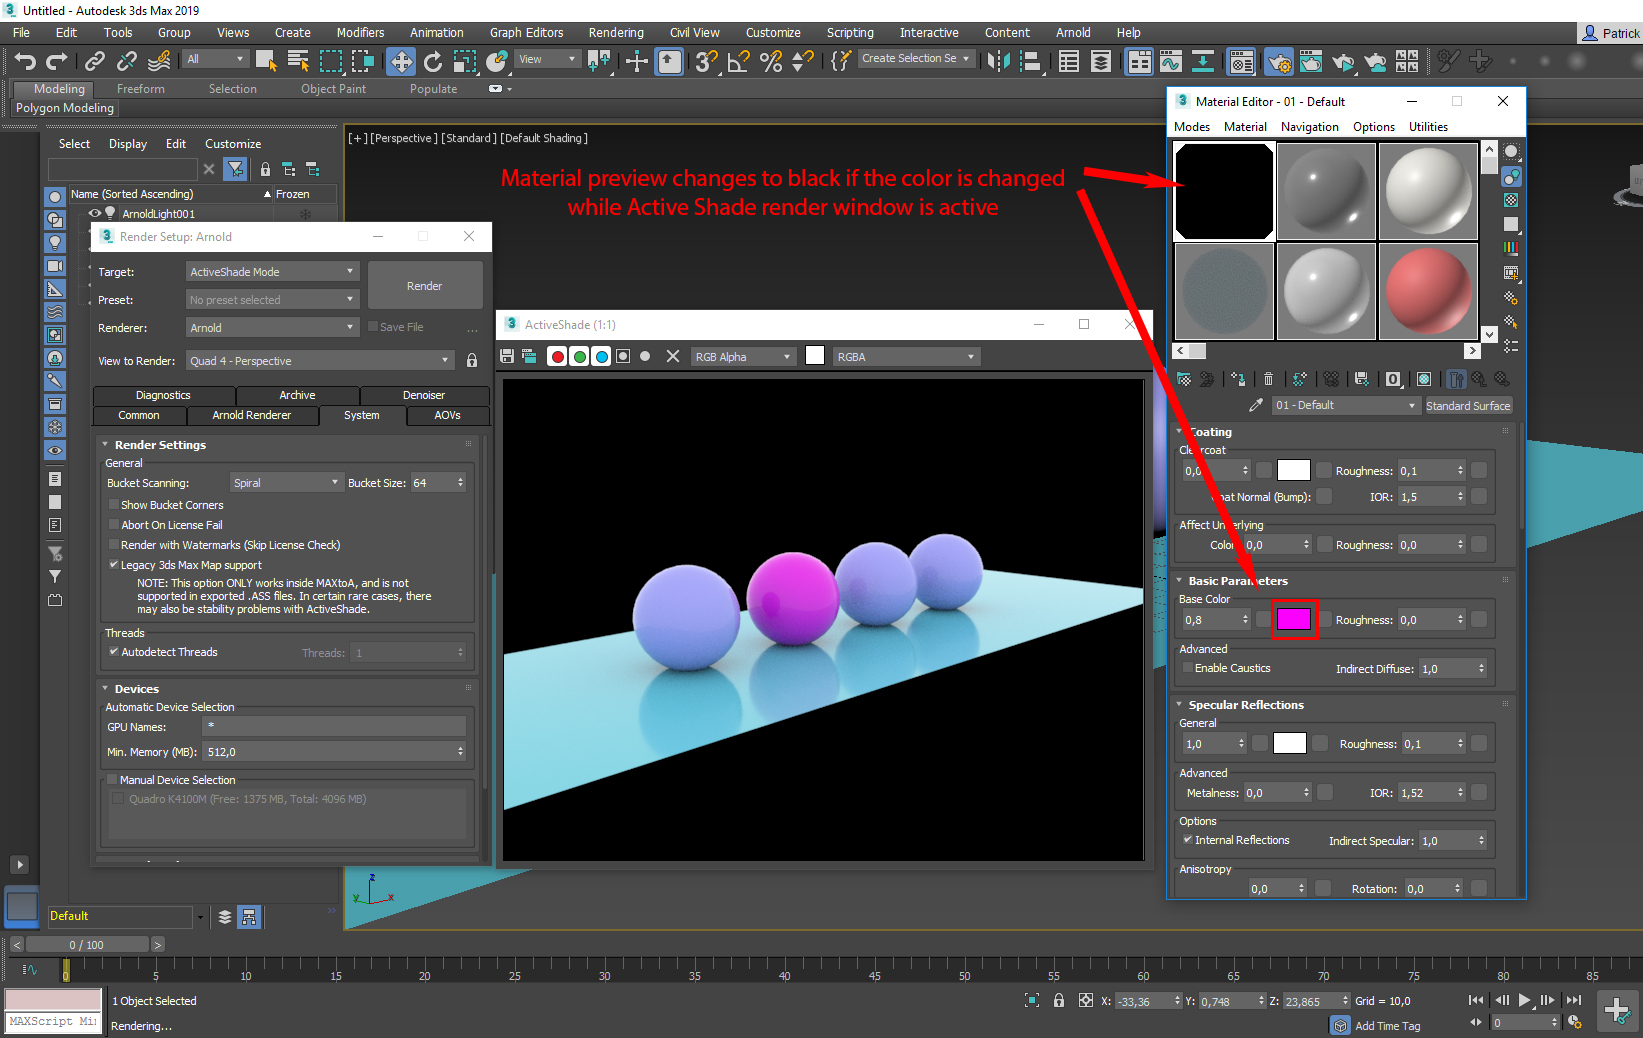 Arnold material preview changes to black in Material Editor in 3ds